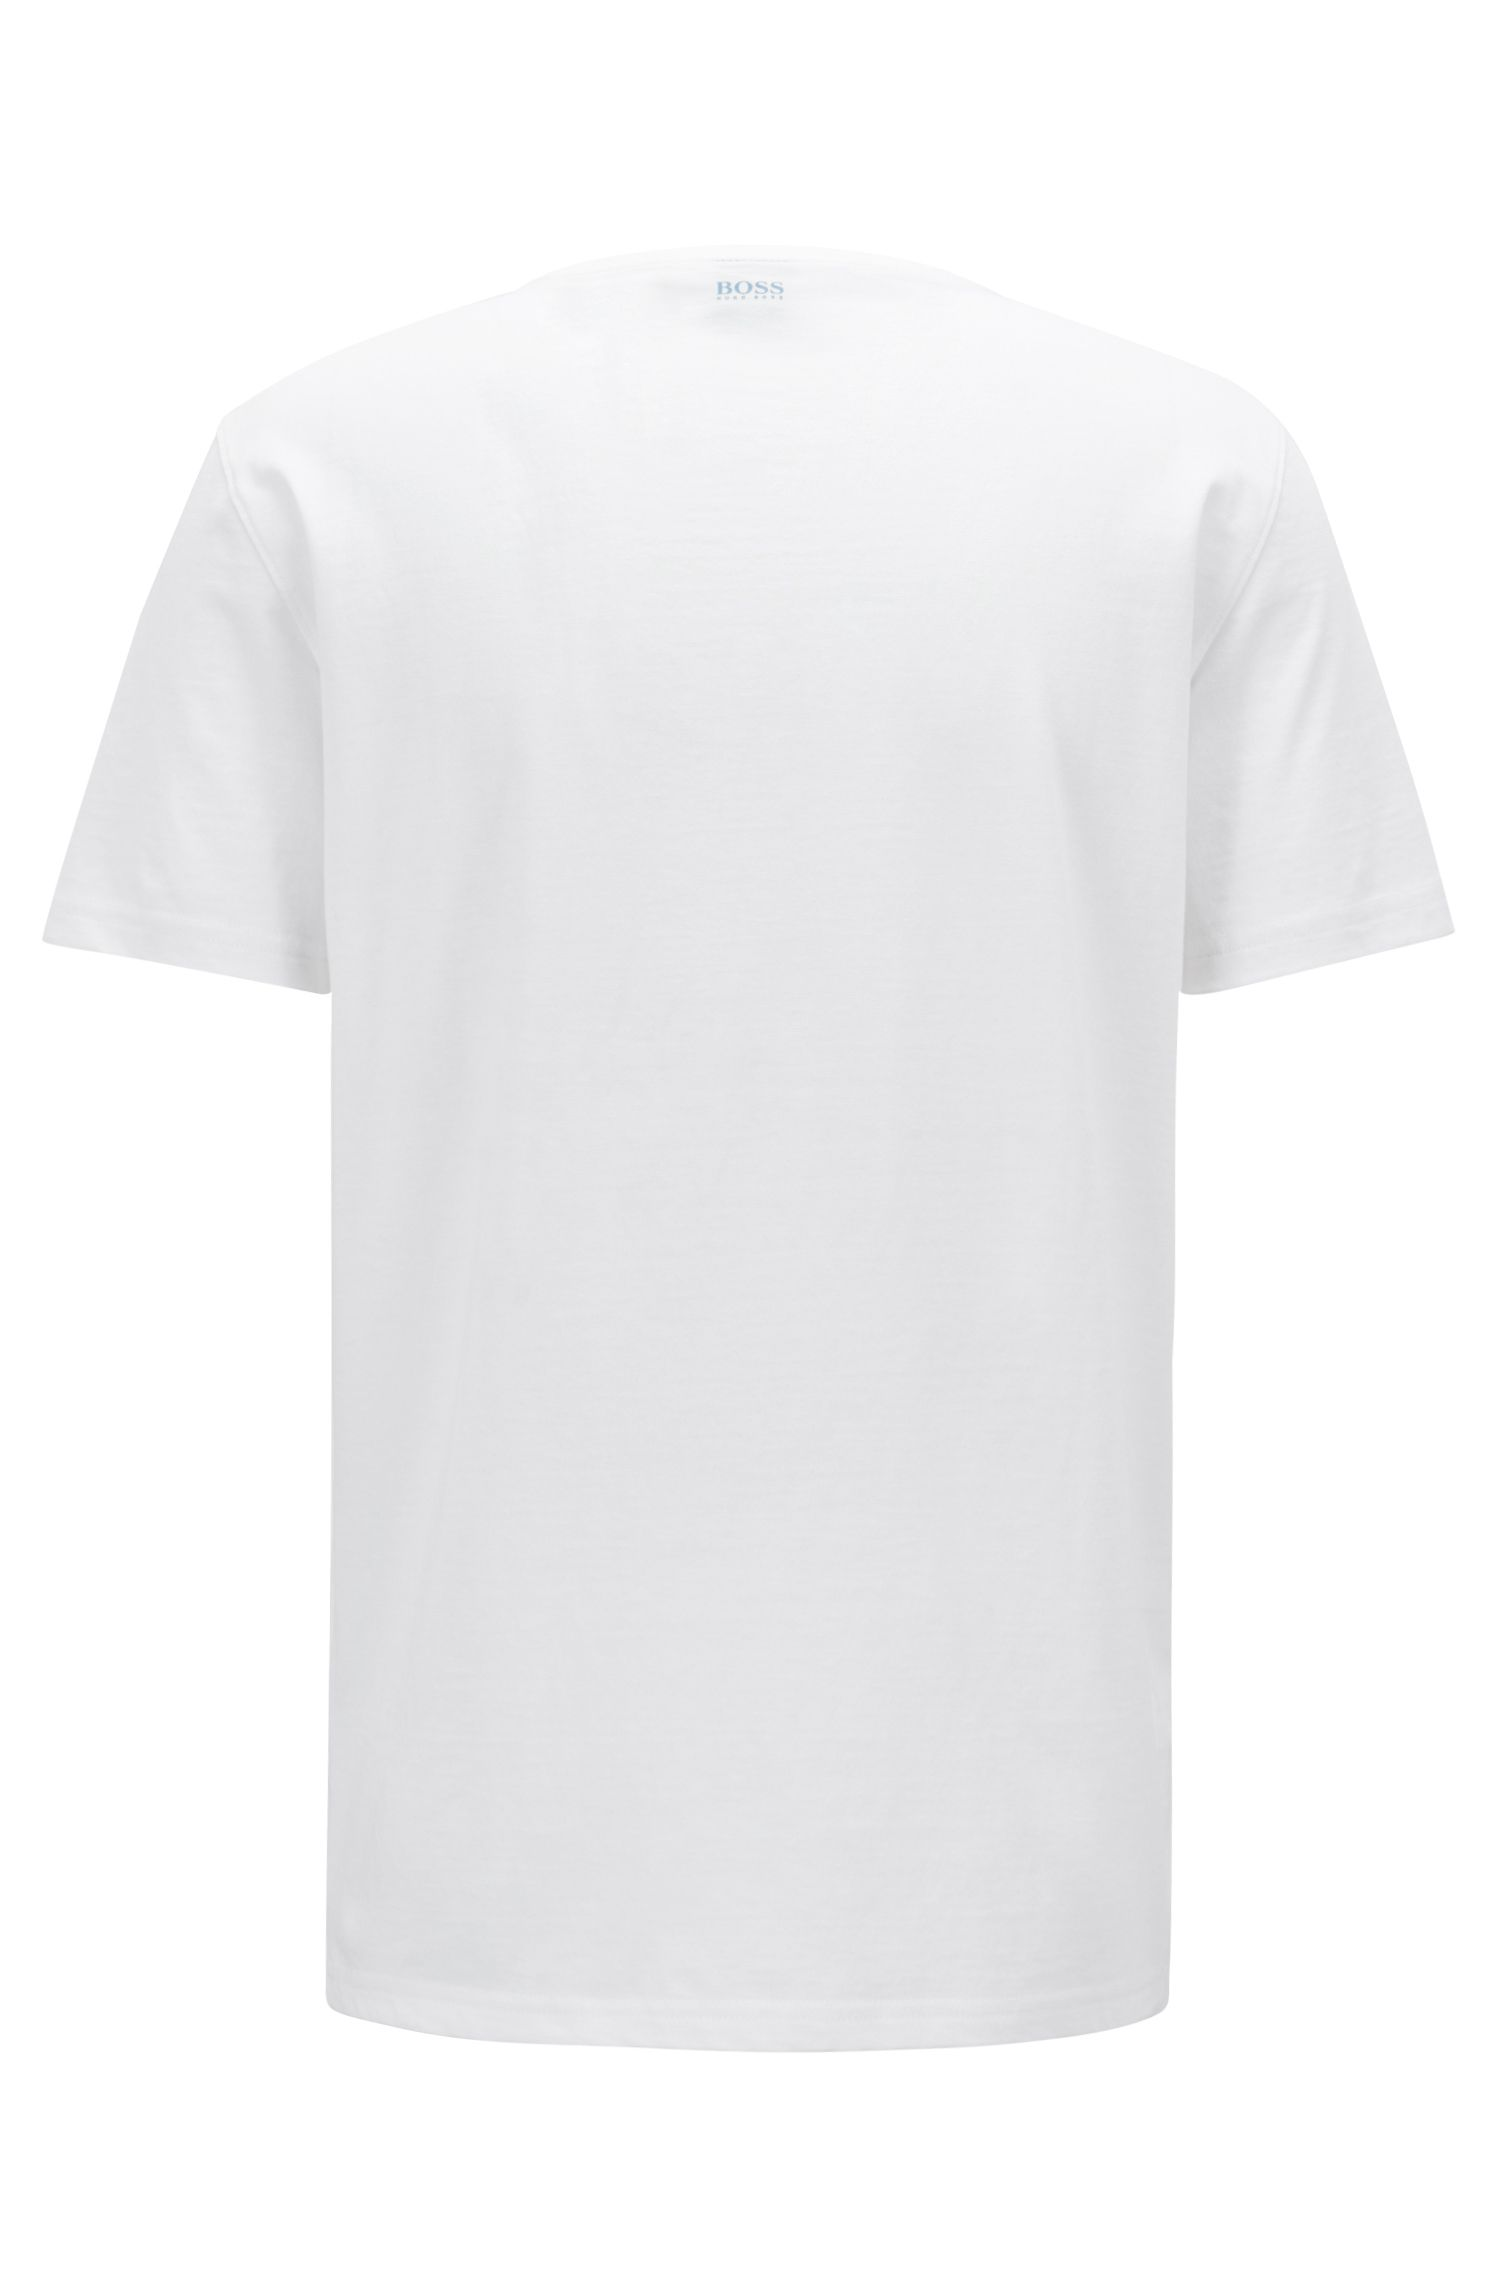 Regular-fit T-shirt in heavyweight cotton with photo print, White